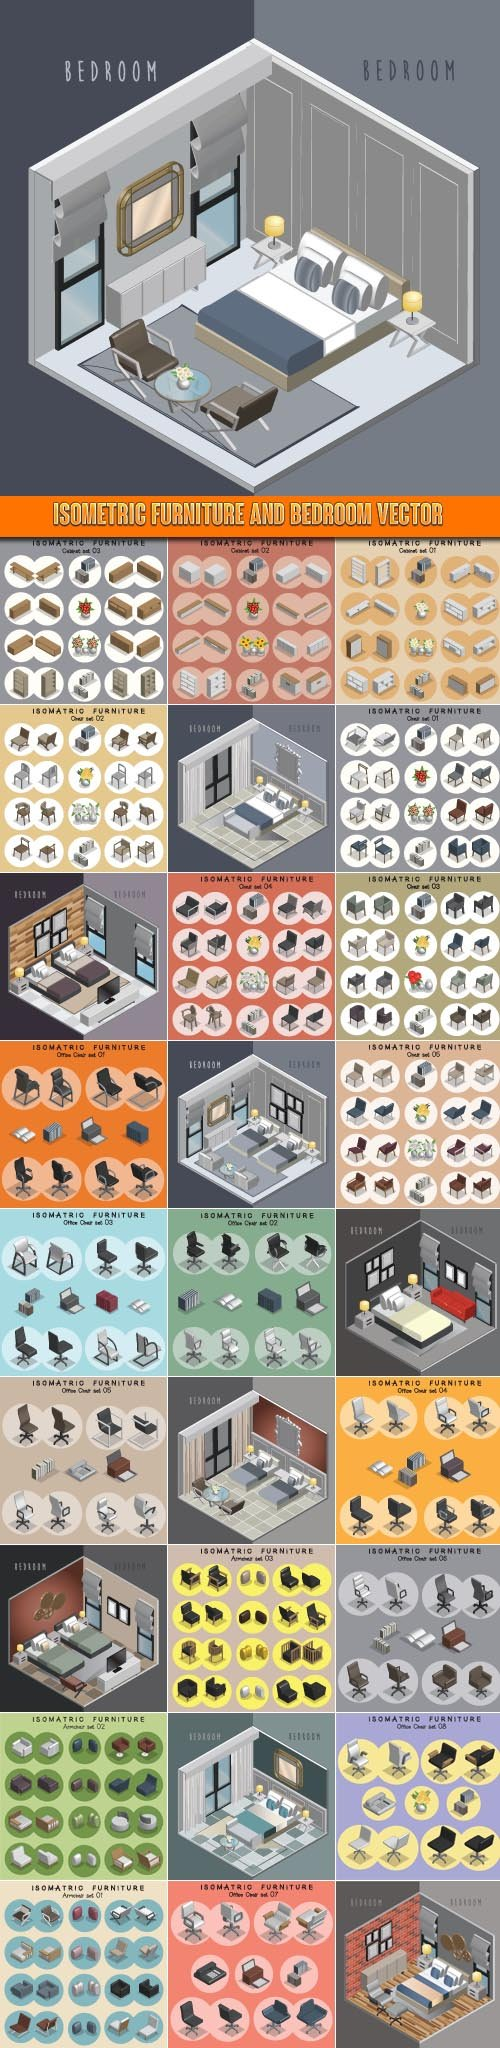 download isometric furniture and bedroom vector free or